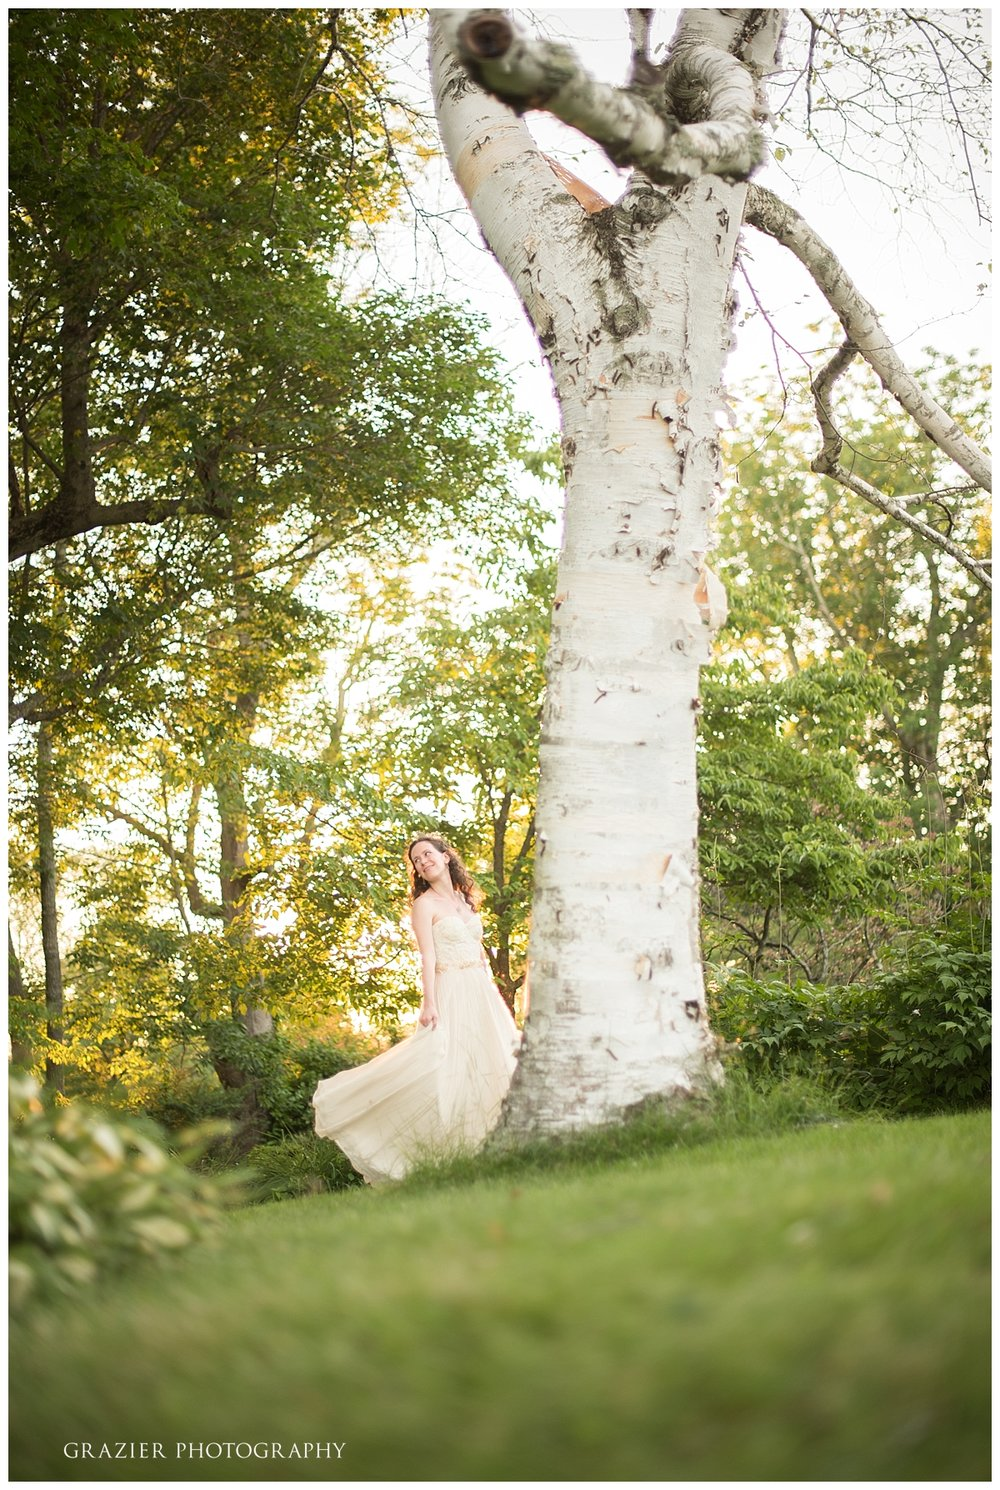 Tyrone Farm Wedding Grazier Photography 2017-100_WEB.jpg